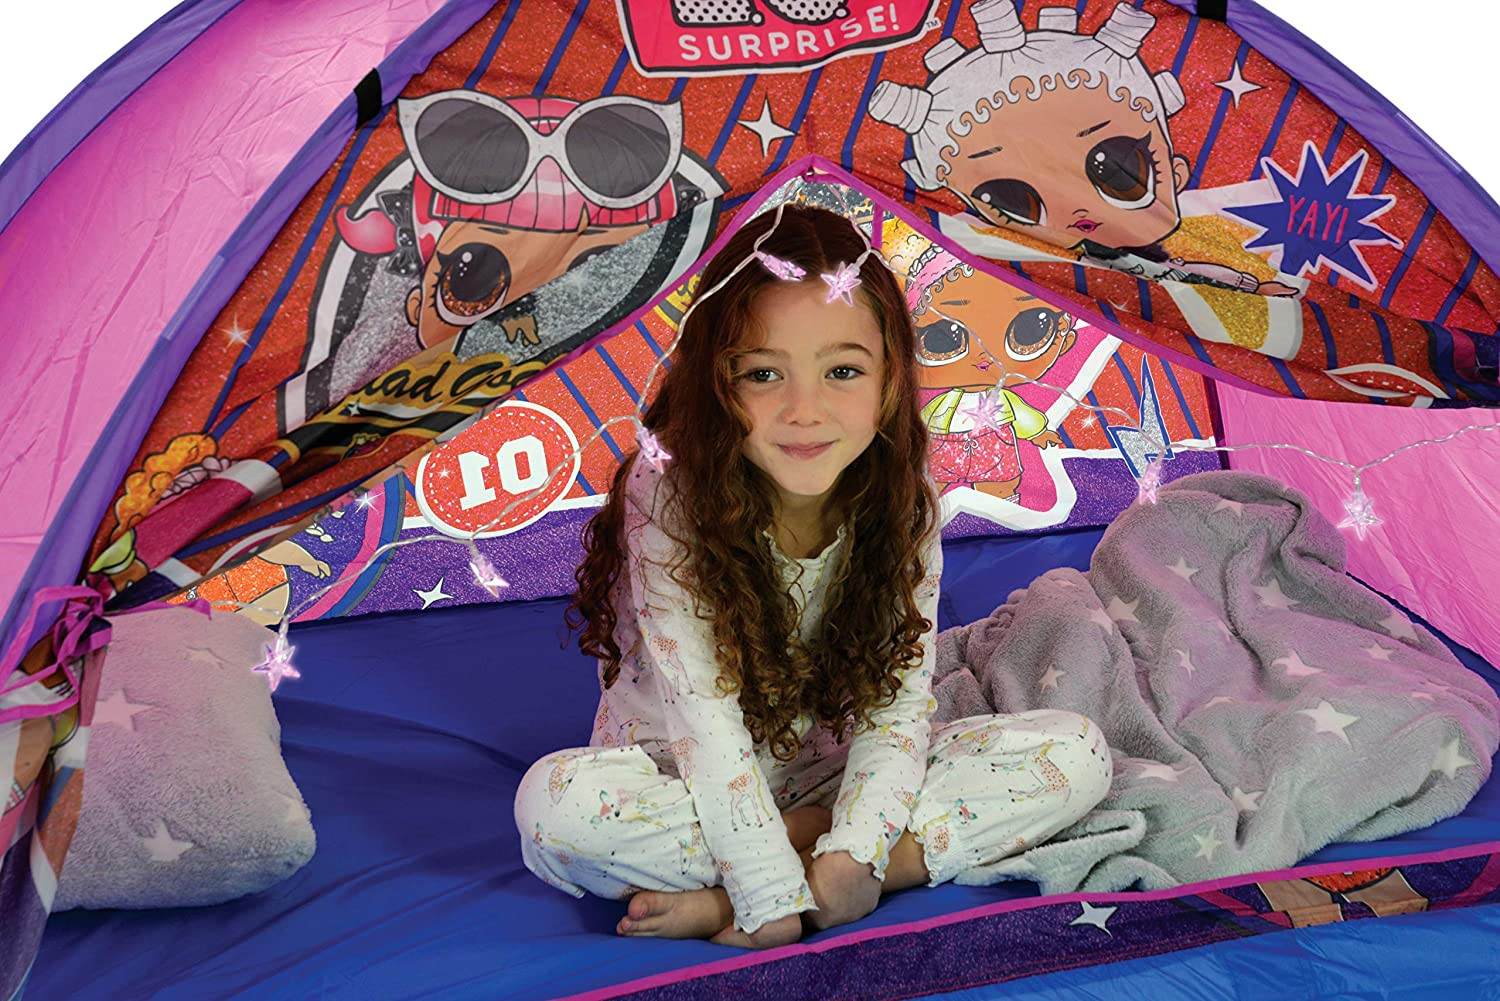 Pink Surprise L.O.L M009709 LOL Surprise Dream Den Tent